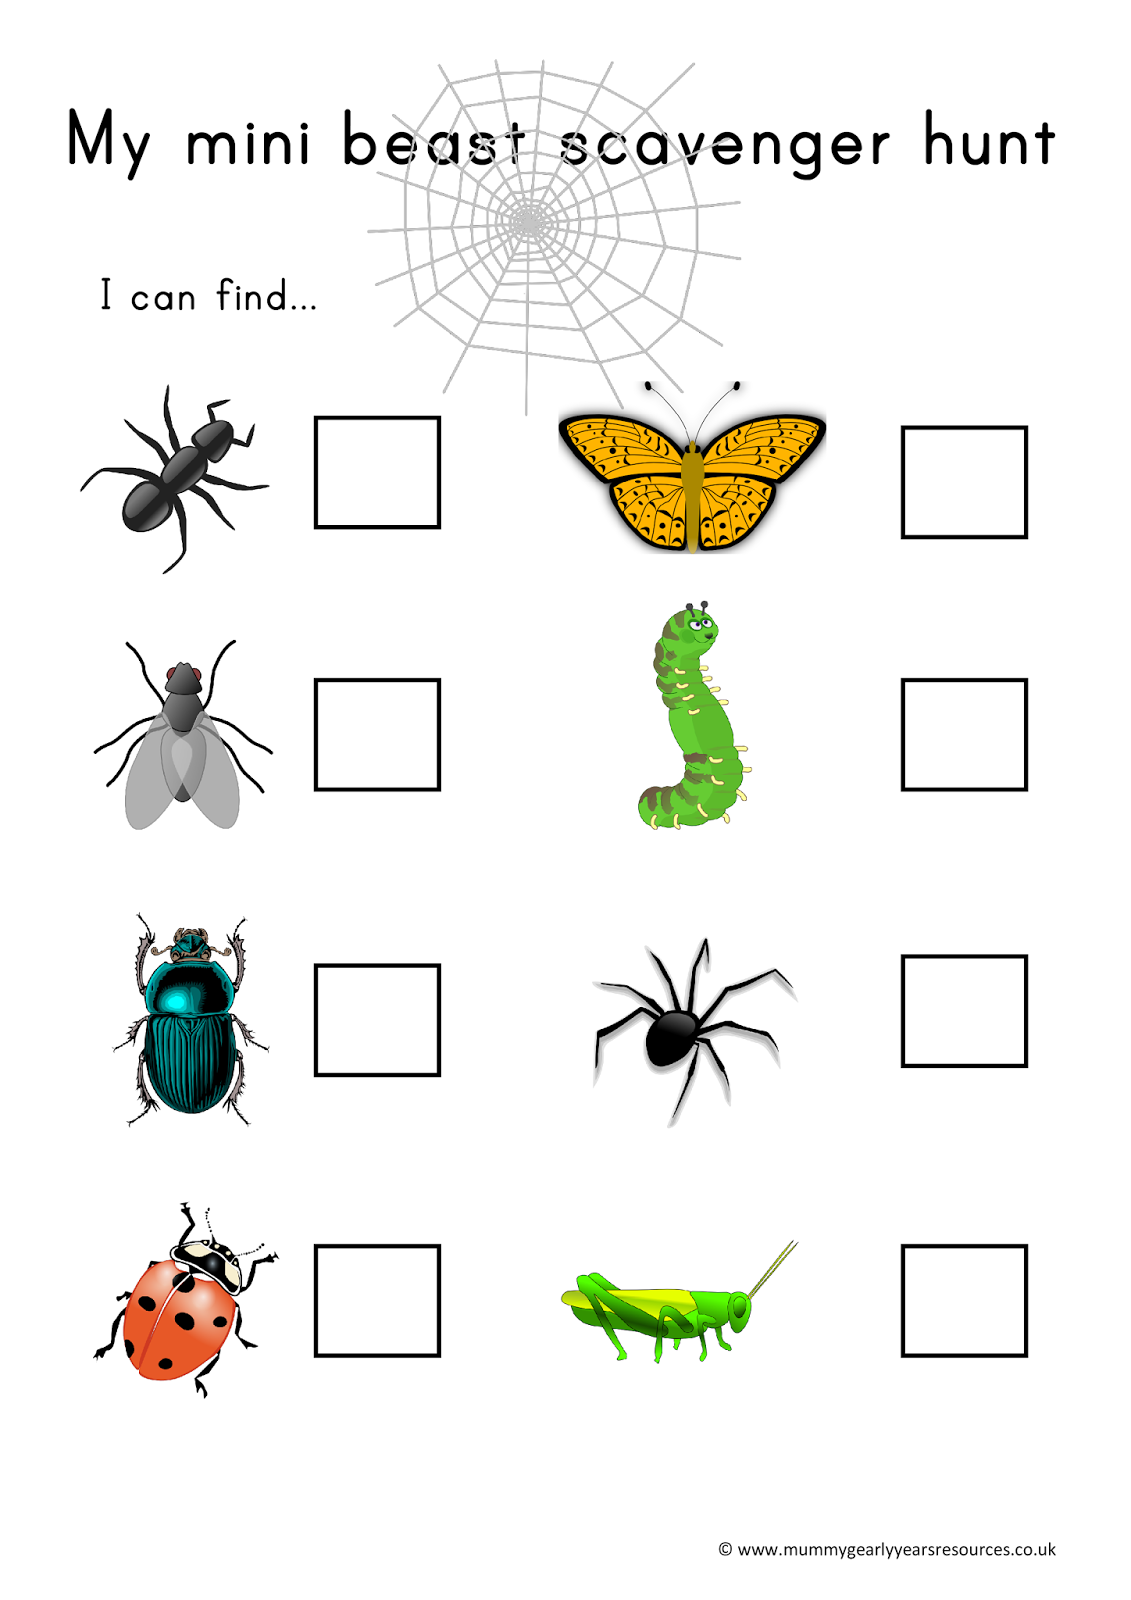 Insect clipart minibeast. Mummy g early years